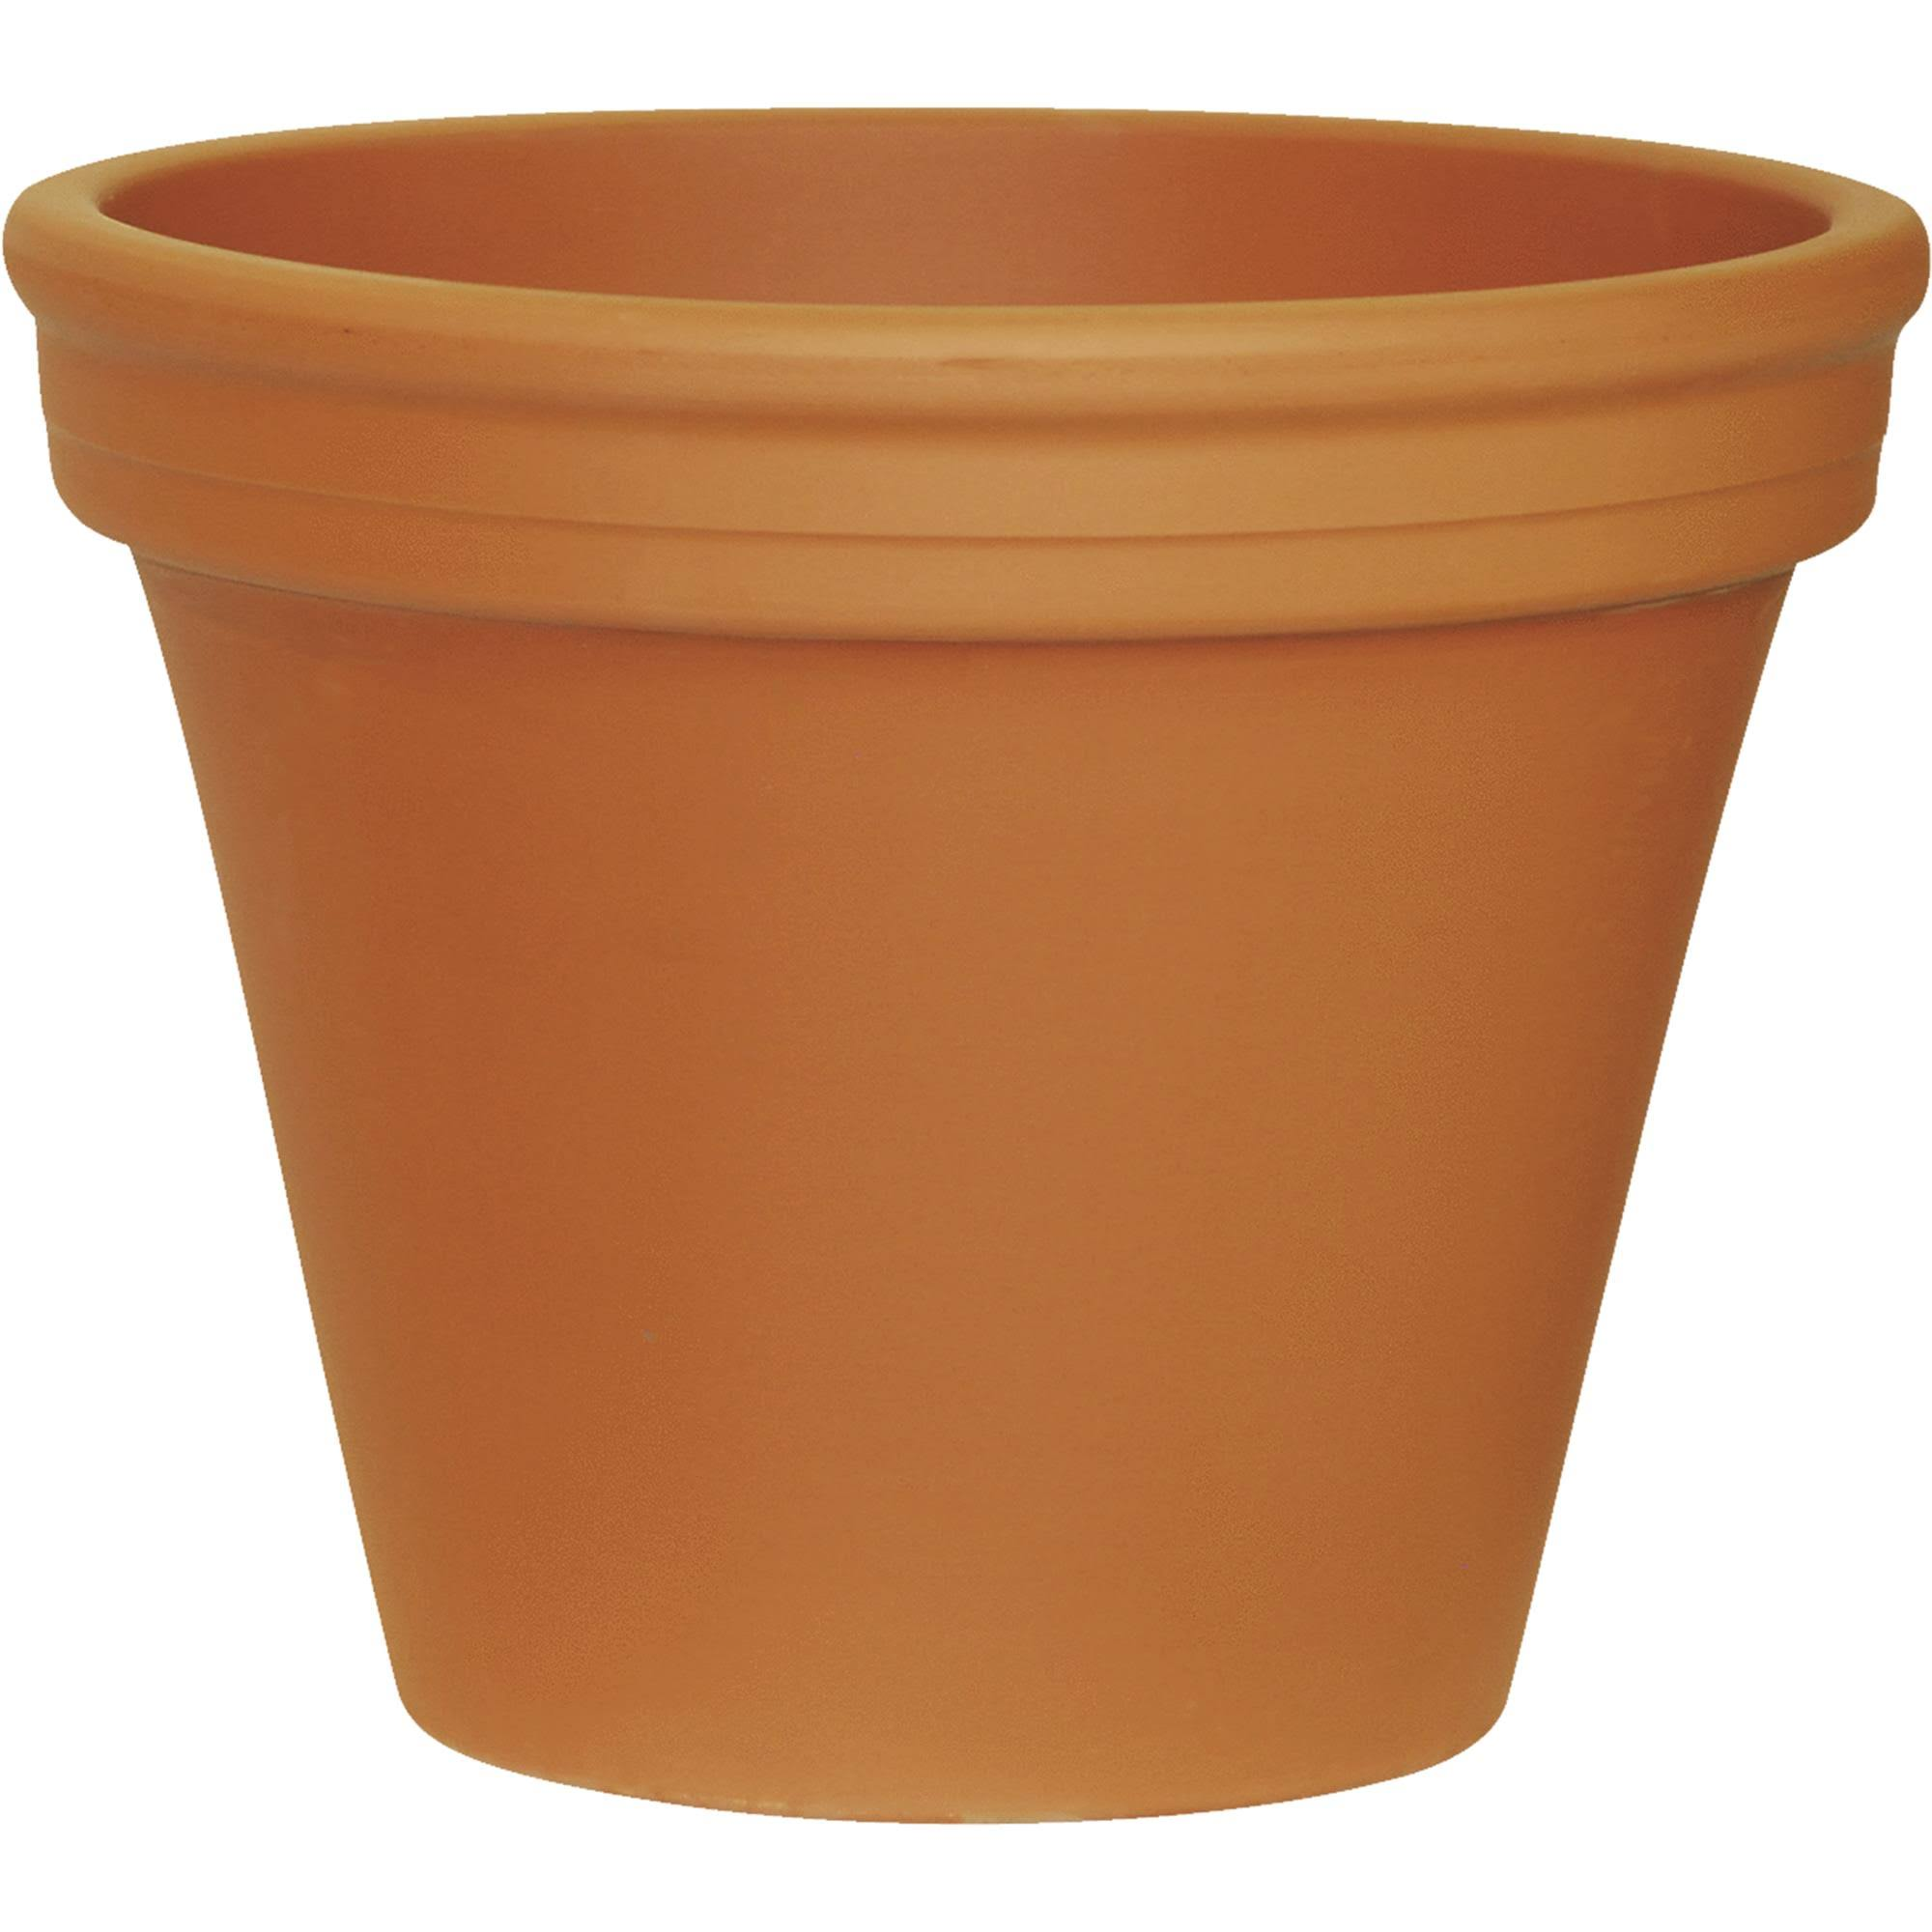 Deroma Terracotta Clay Pot